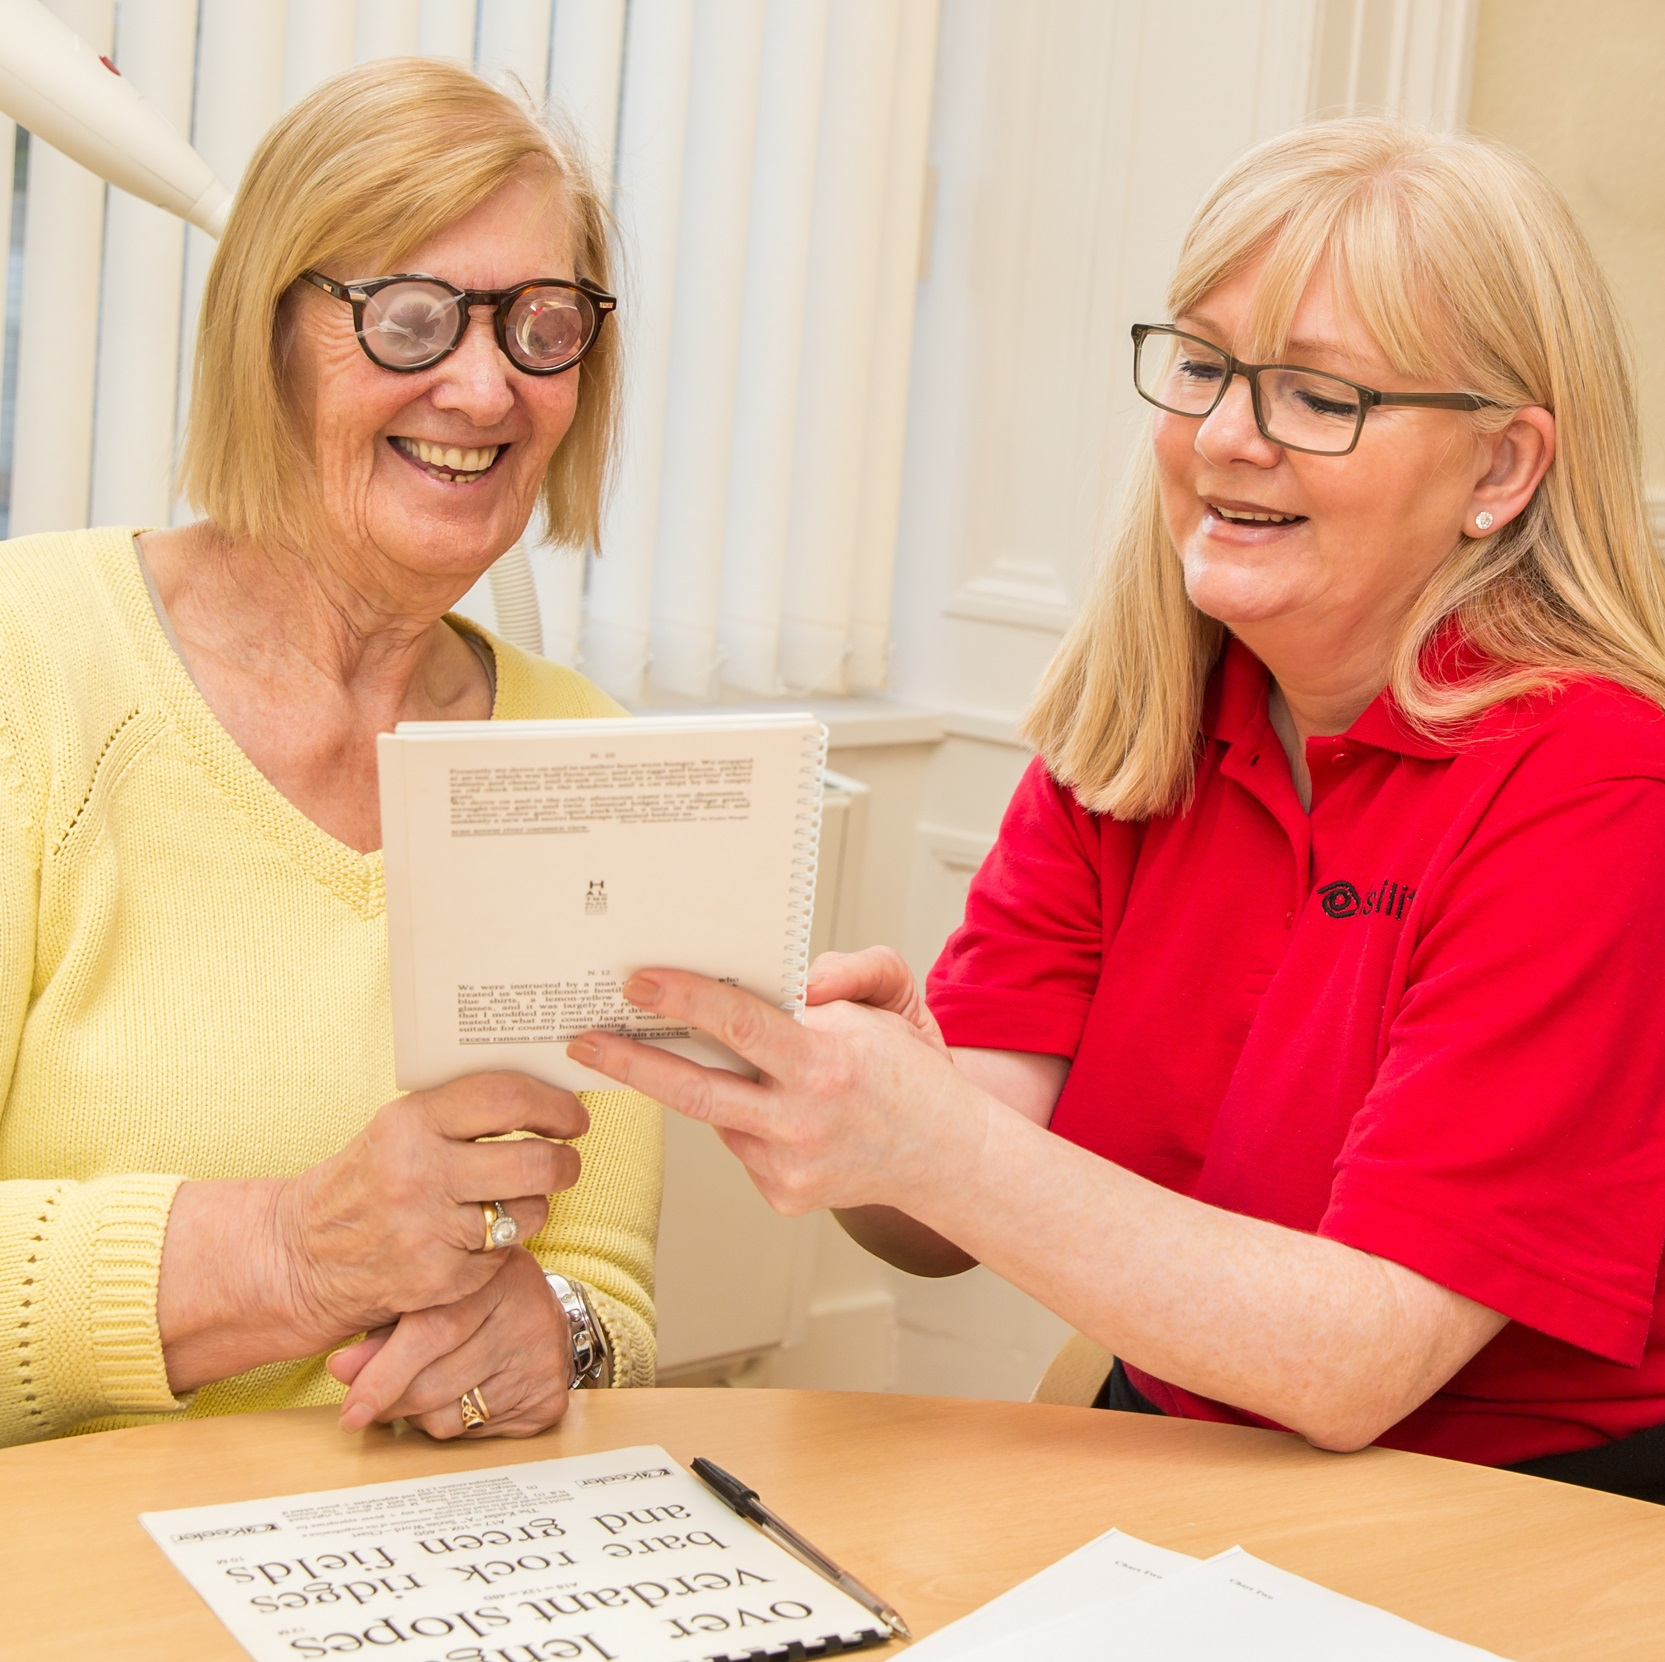 Jessie reading a pad of paper with hyper-ocular glasses on, while Liz the tutor smiles at her